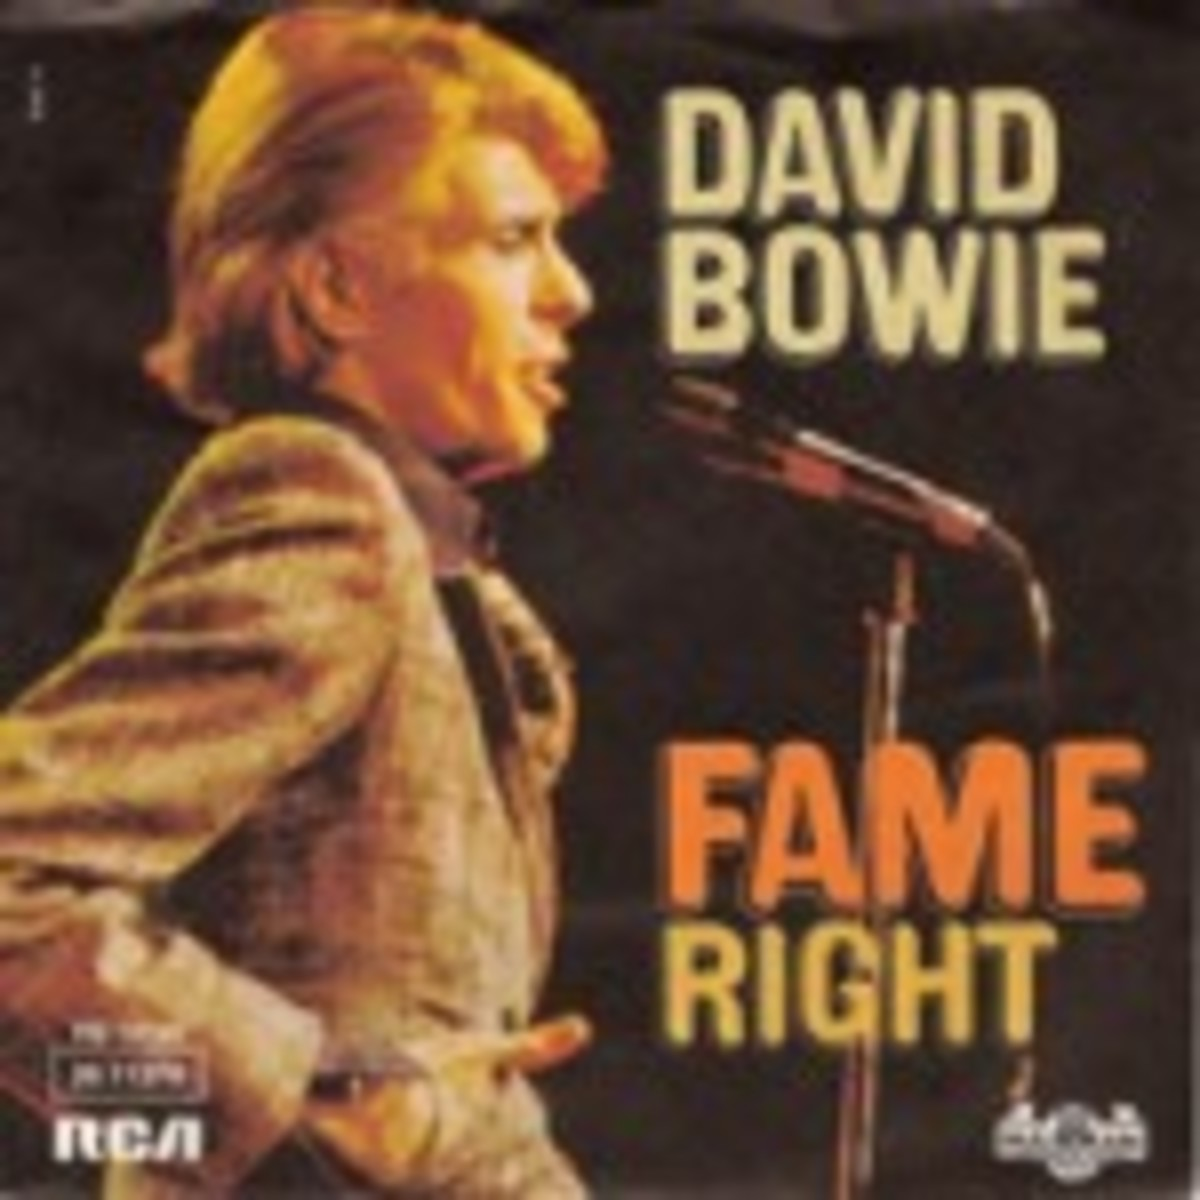 DavidBowie_Fame_German